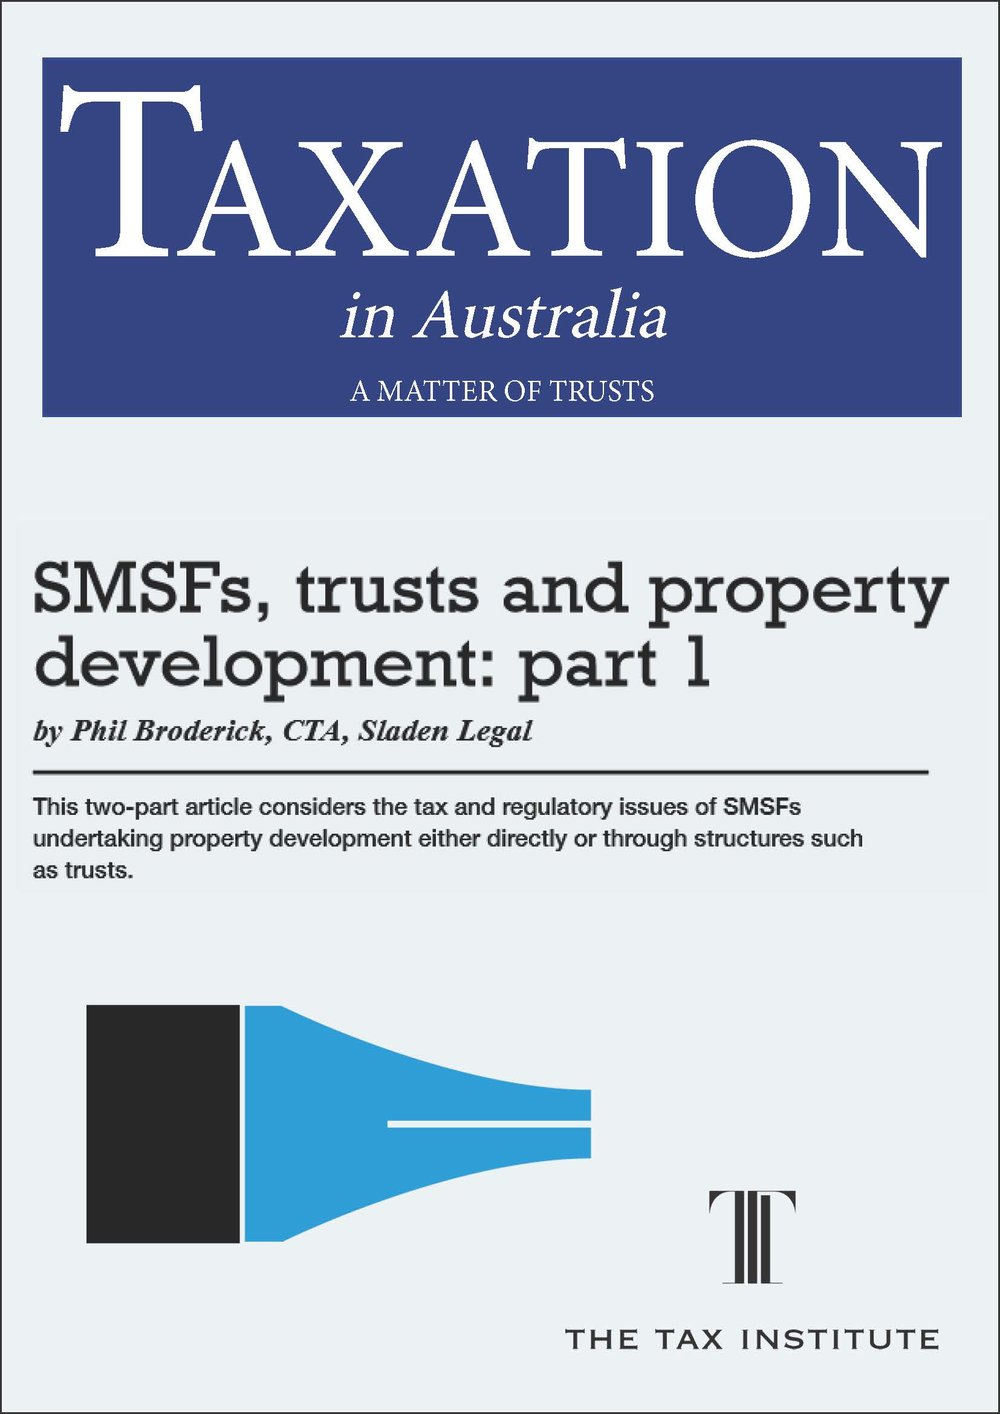 SMSFs, trusts and property development: part 1 04 March 2015